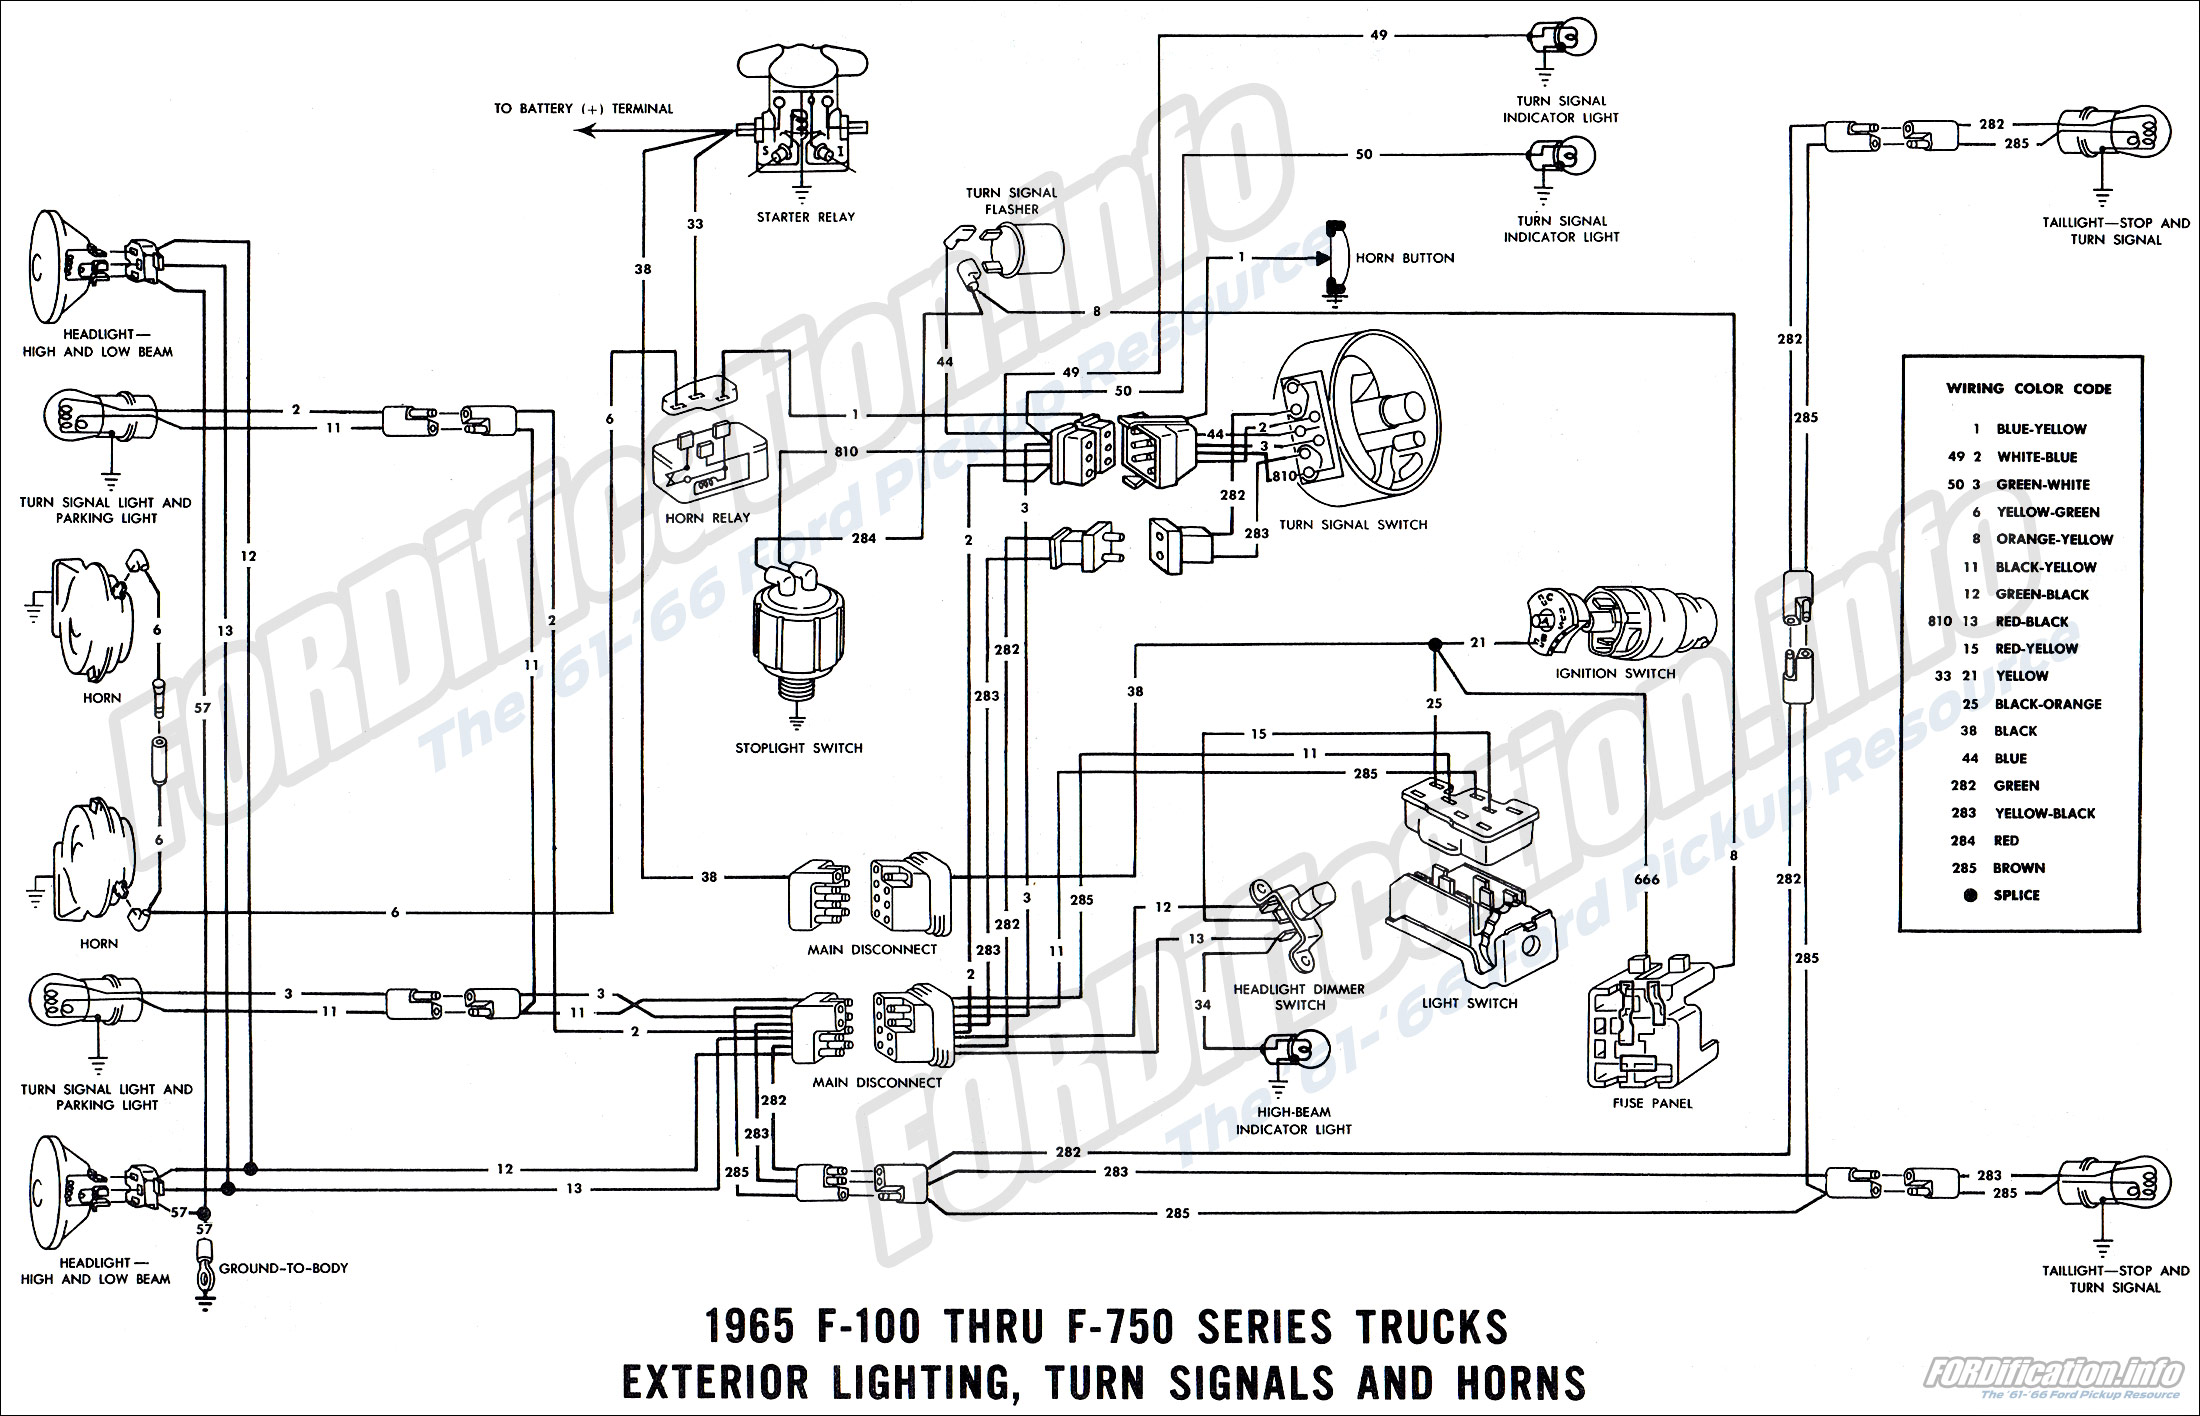 1967 Ford F100 Turn Signal Wiring Diagram Diagram Base Website Wiring  Diagram - UNLABELEDHEARTDIAGRAM.RIFUGIDELLAROSA.ITDiagram Base Website Full Edition - rifugidellarosa